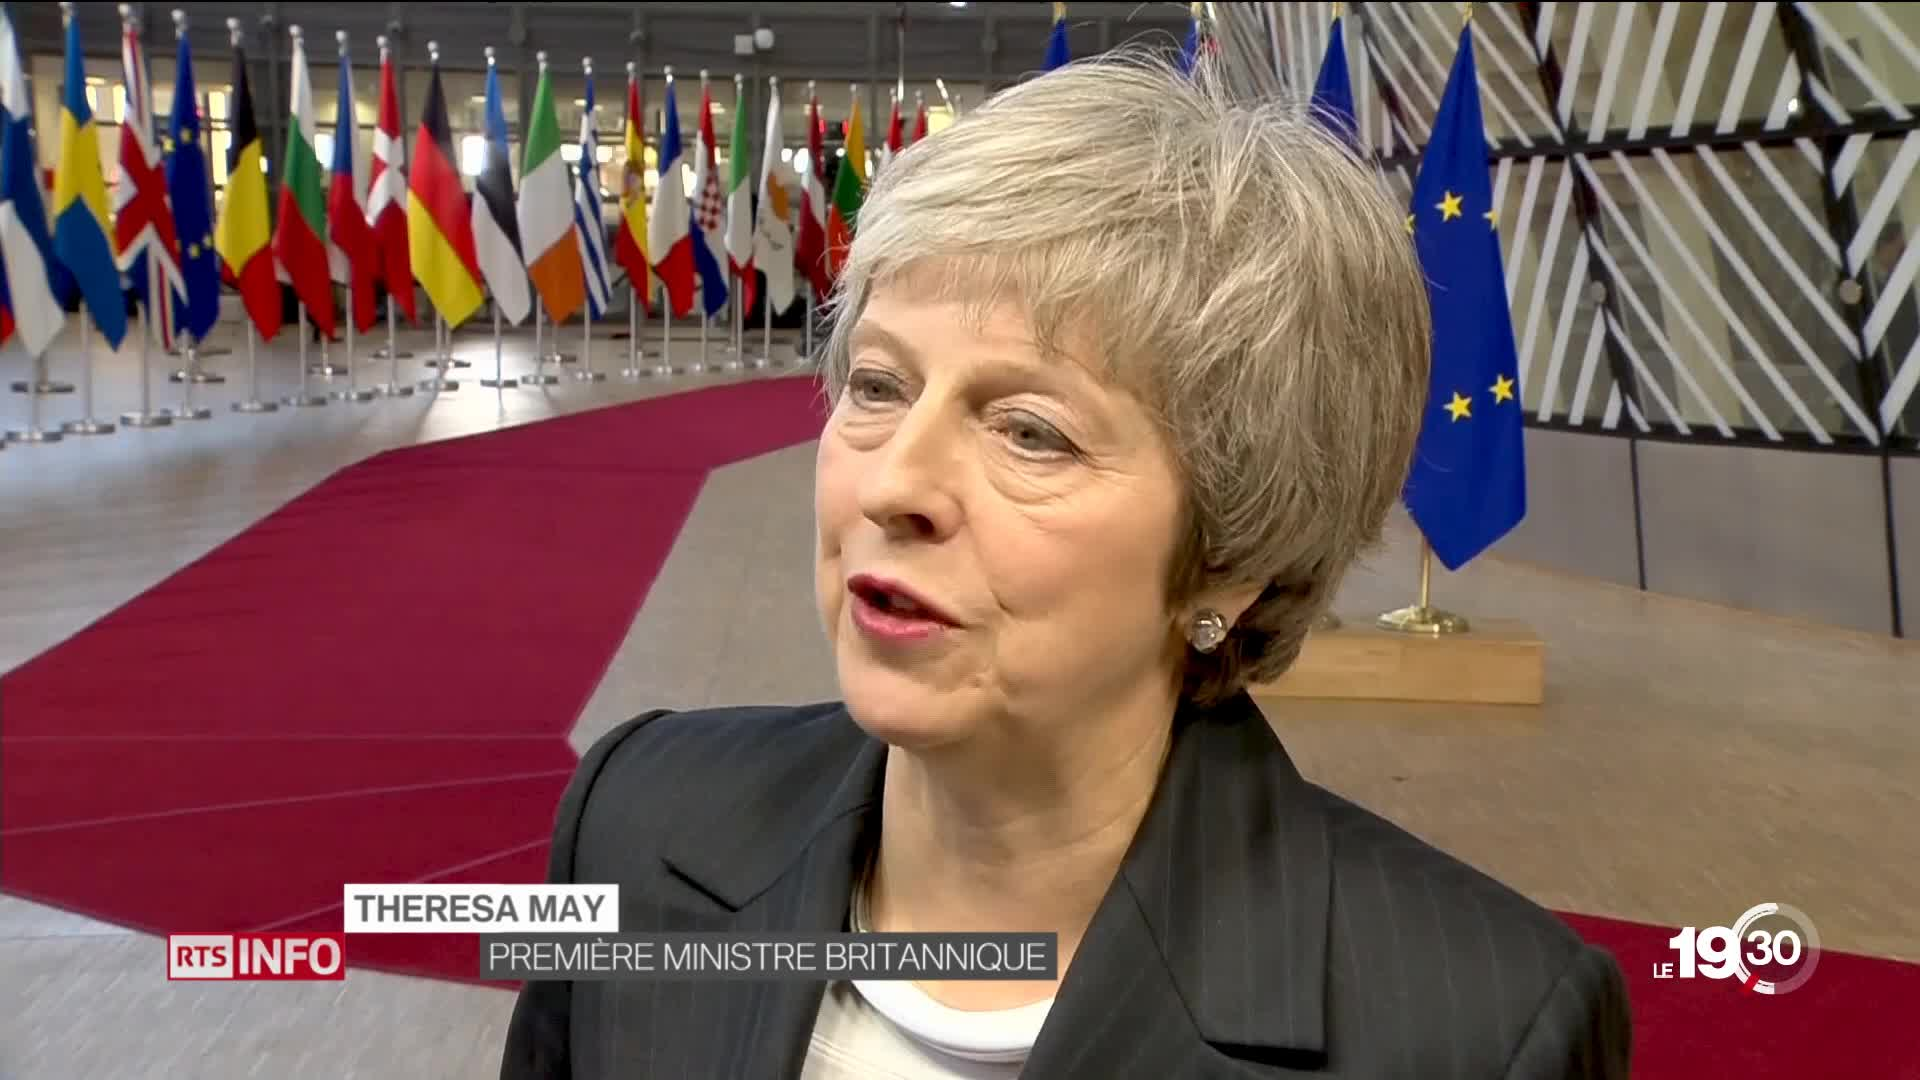 Accord de Brexit: après le vote de confiance, Theresa May avance vers un avenir incertain.